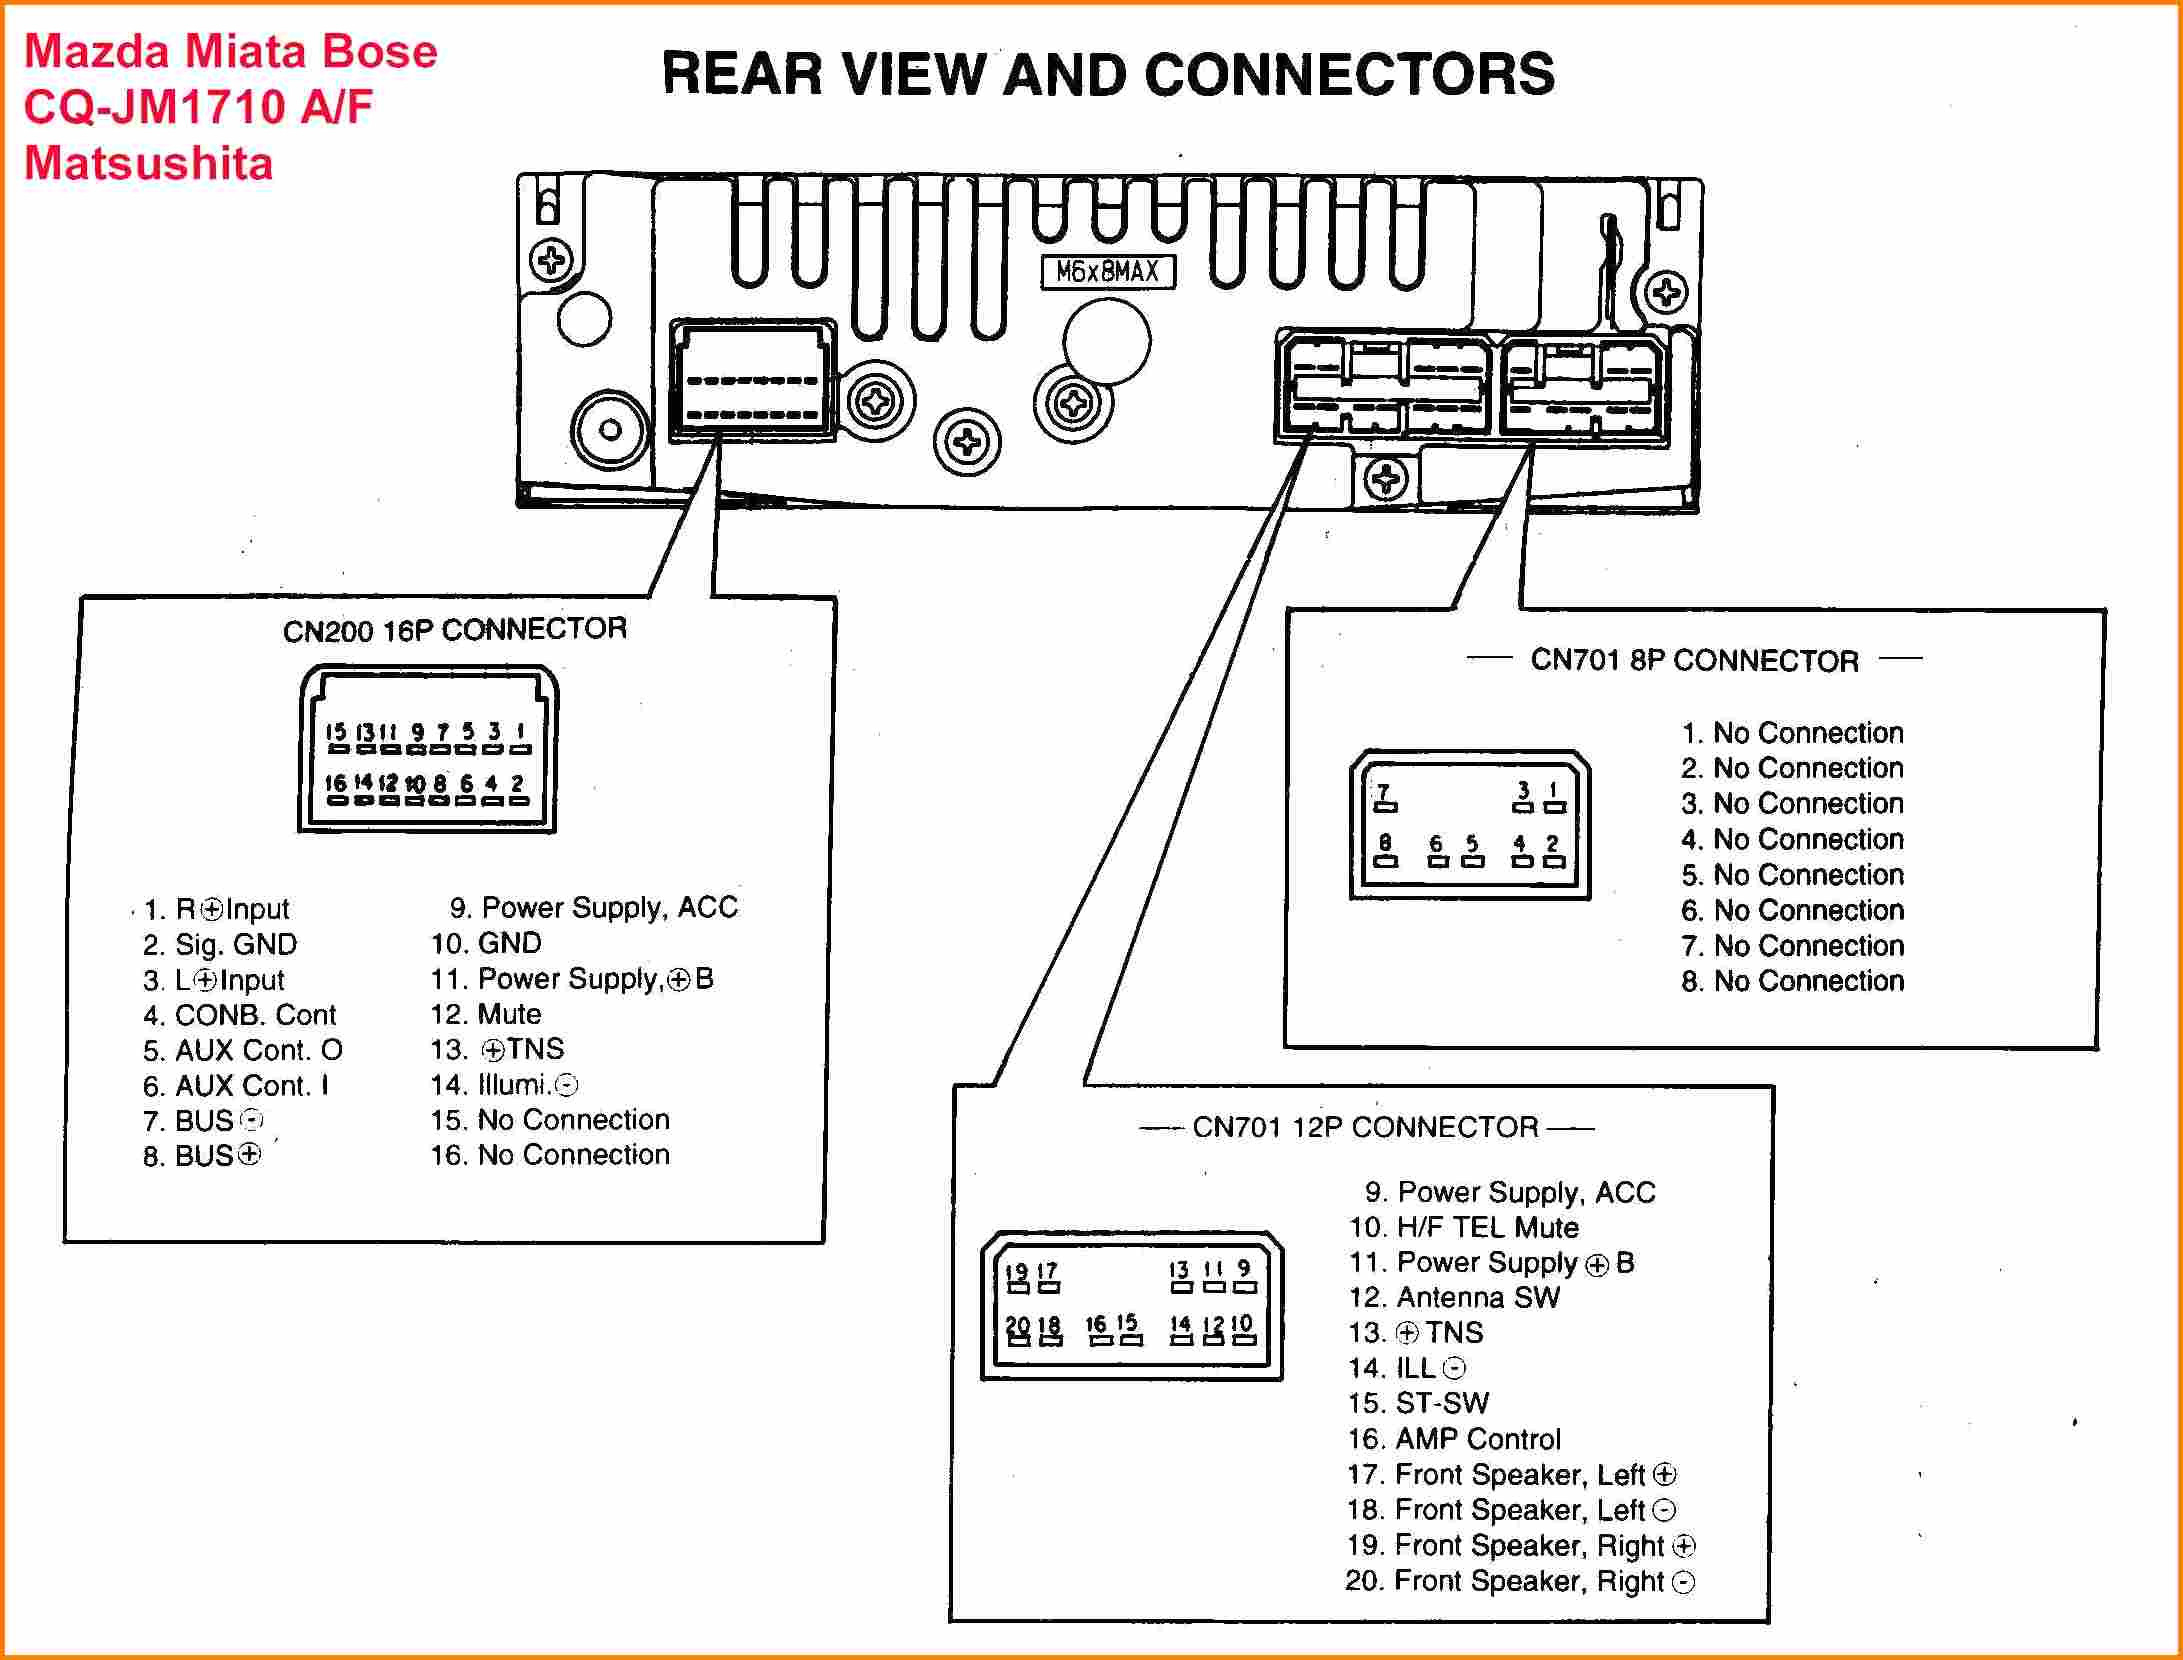 Wiring Diagram Pioneer Deh X1810Ub Manual Fabulous Striking 4300Ub - Pioneer Deh-X1810Ub Wiring Diagram